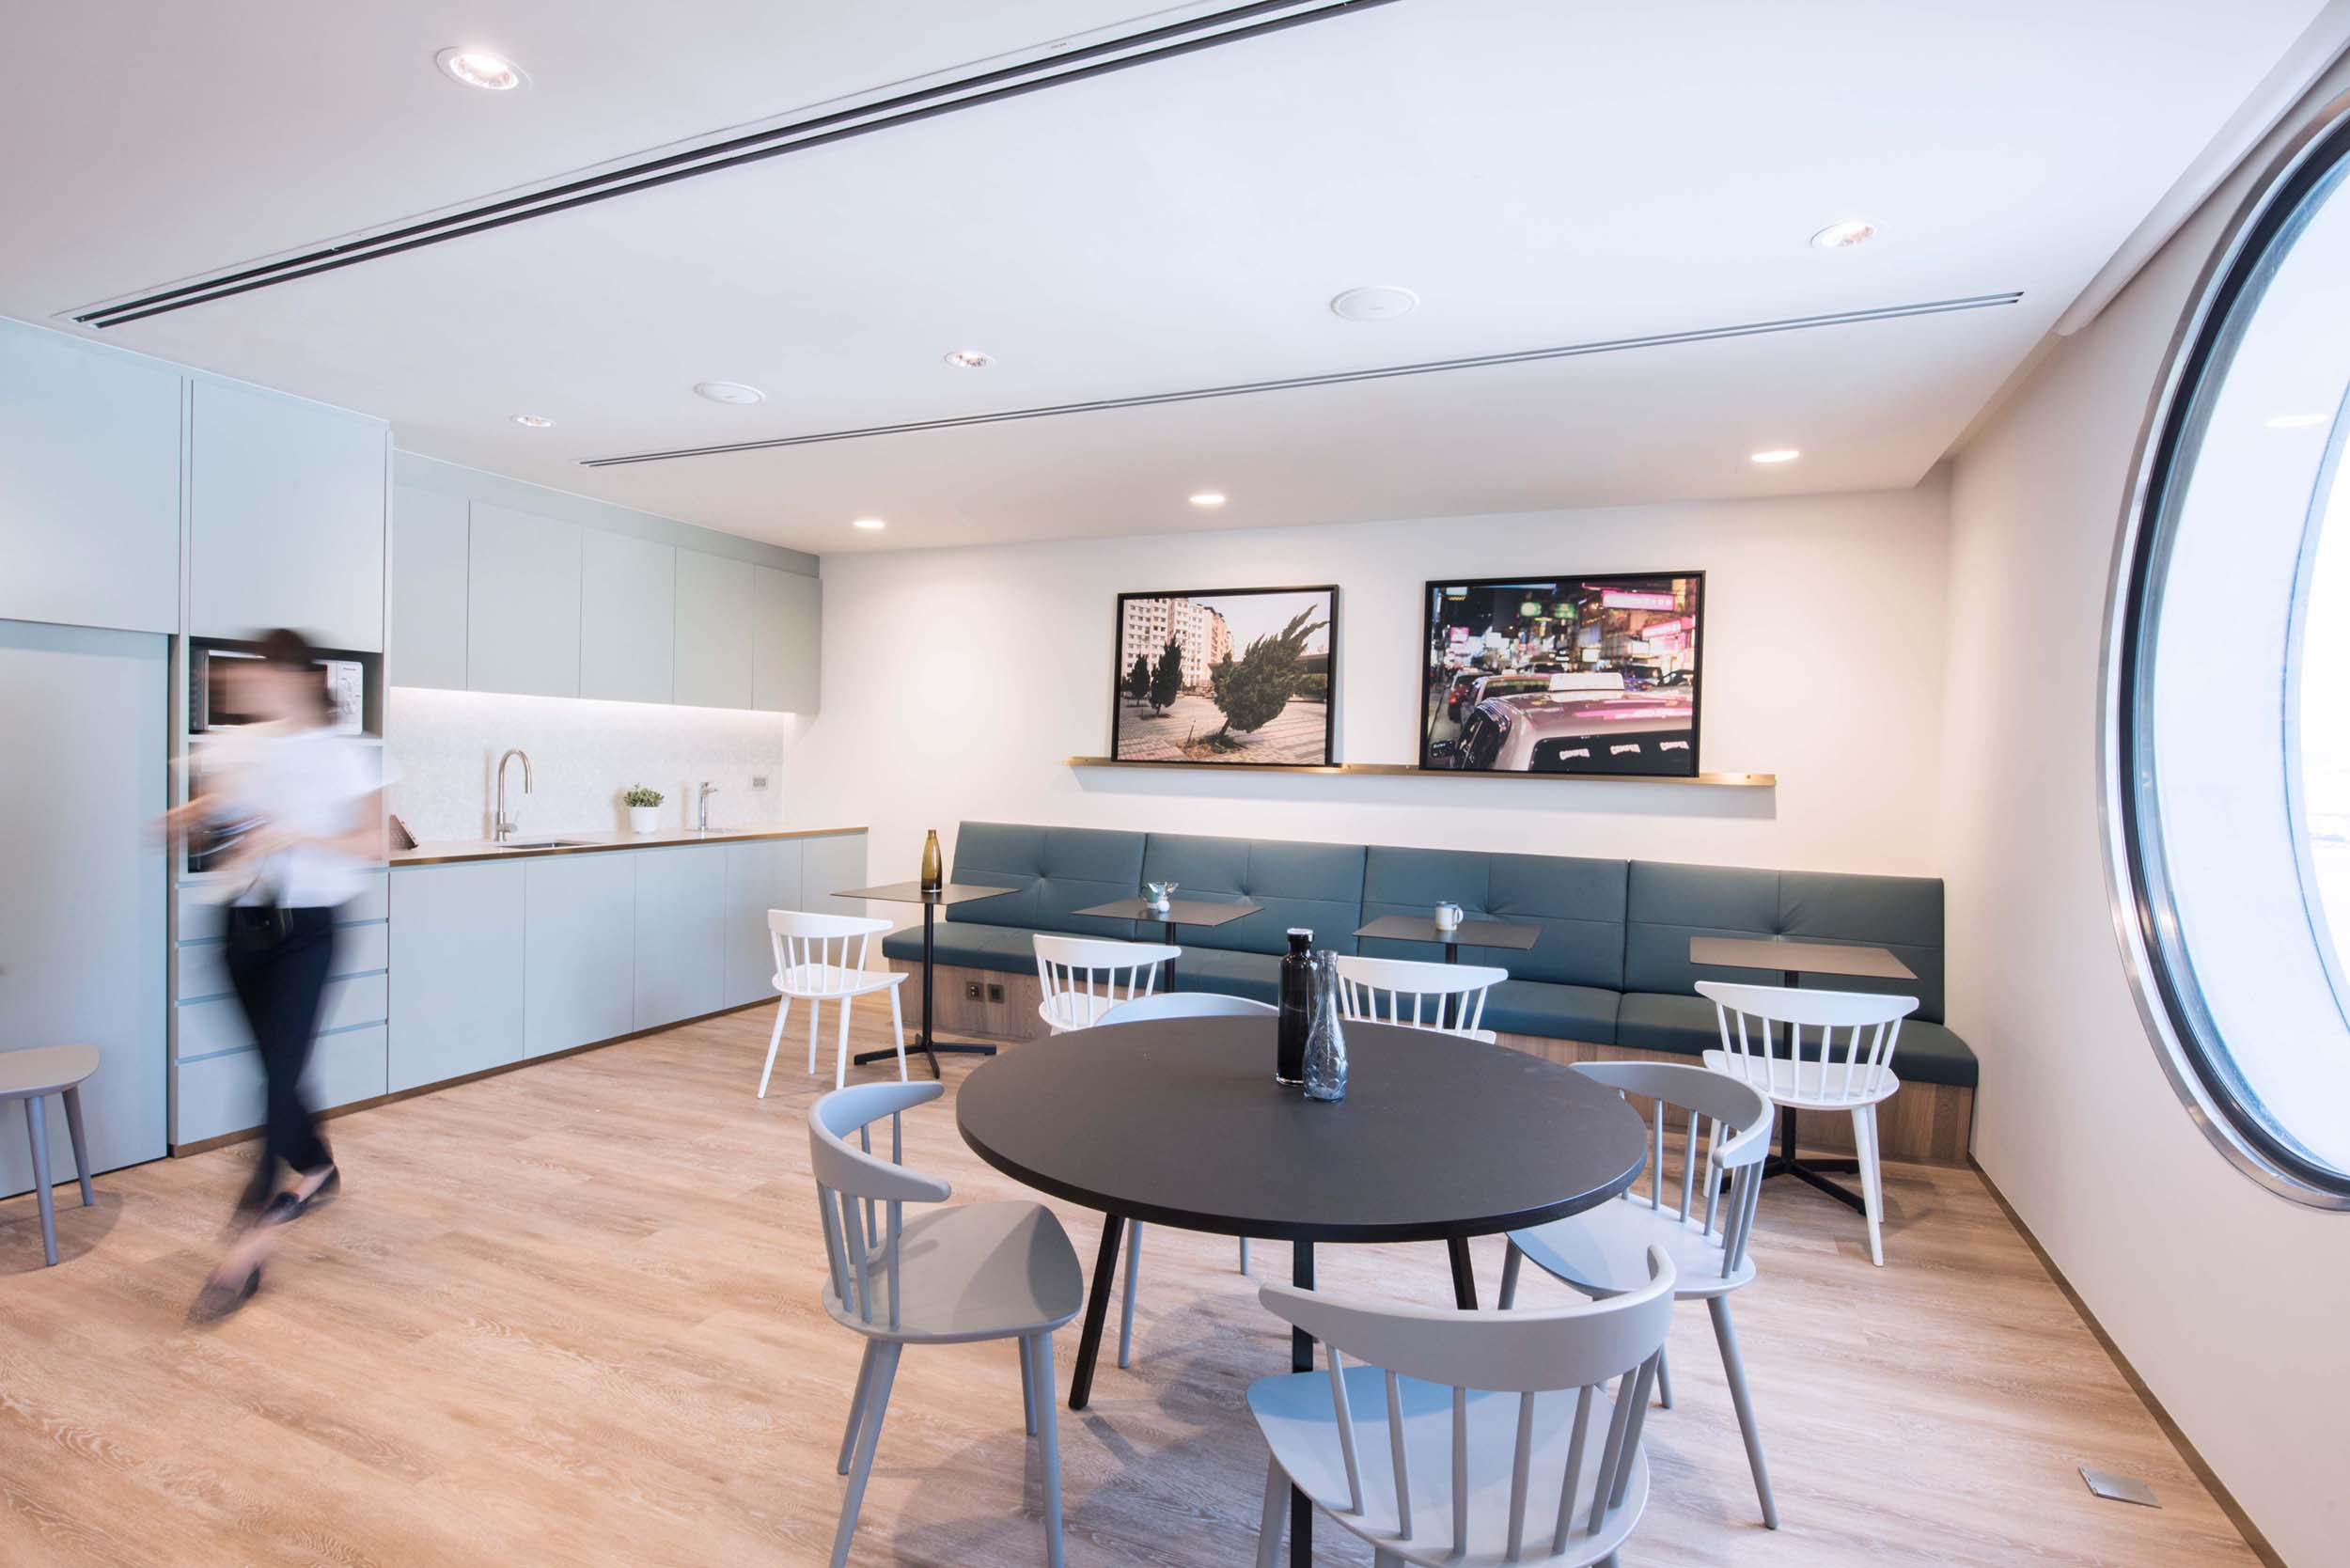 12_Bean Buro_Workplace_Grosvenor_Photos.jpg